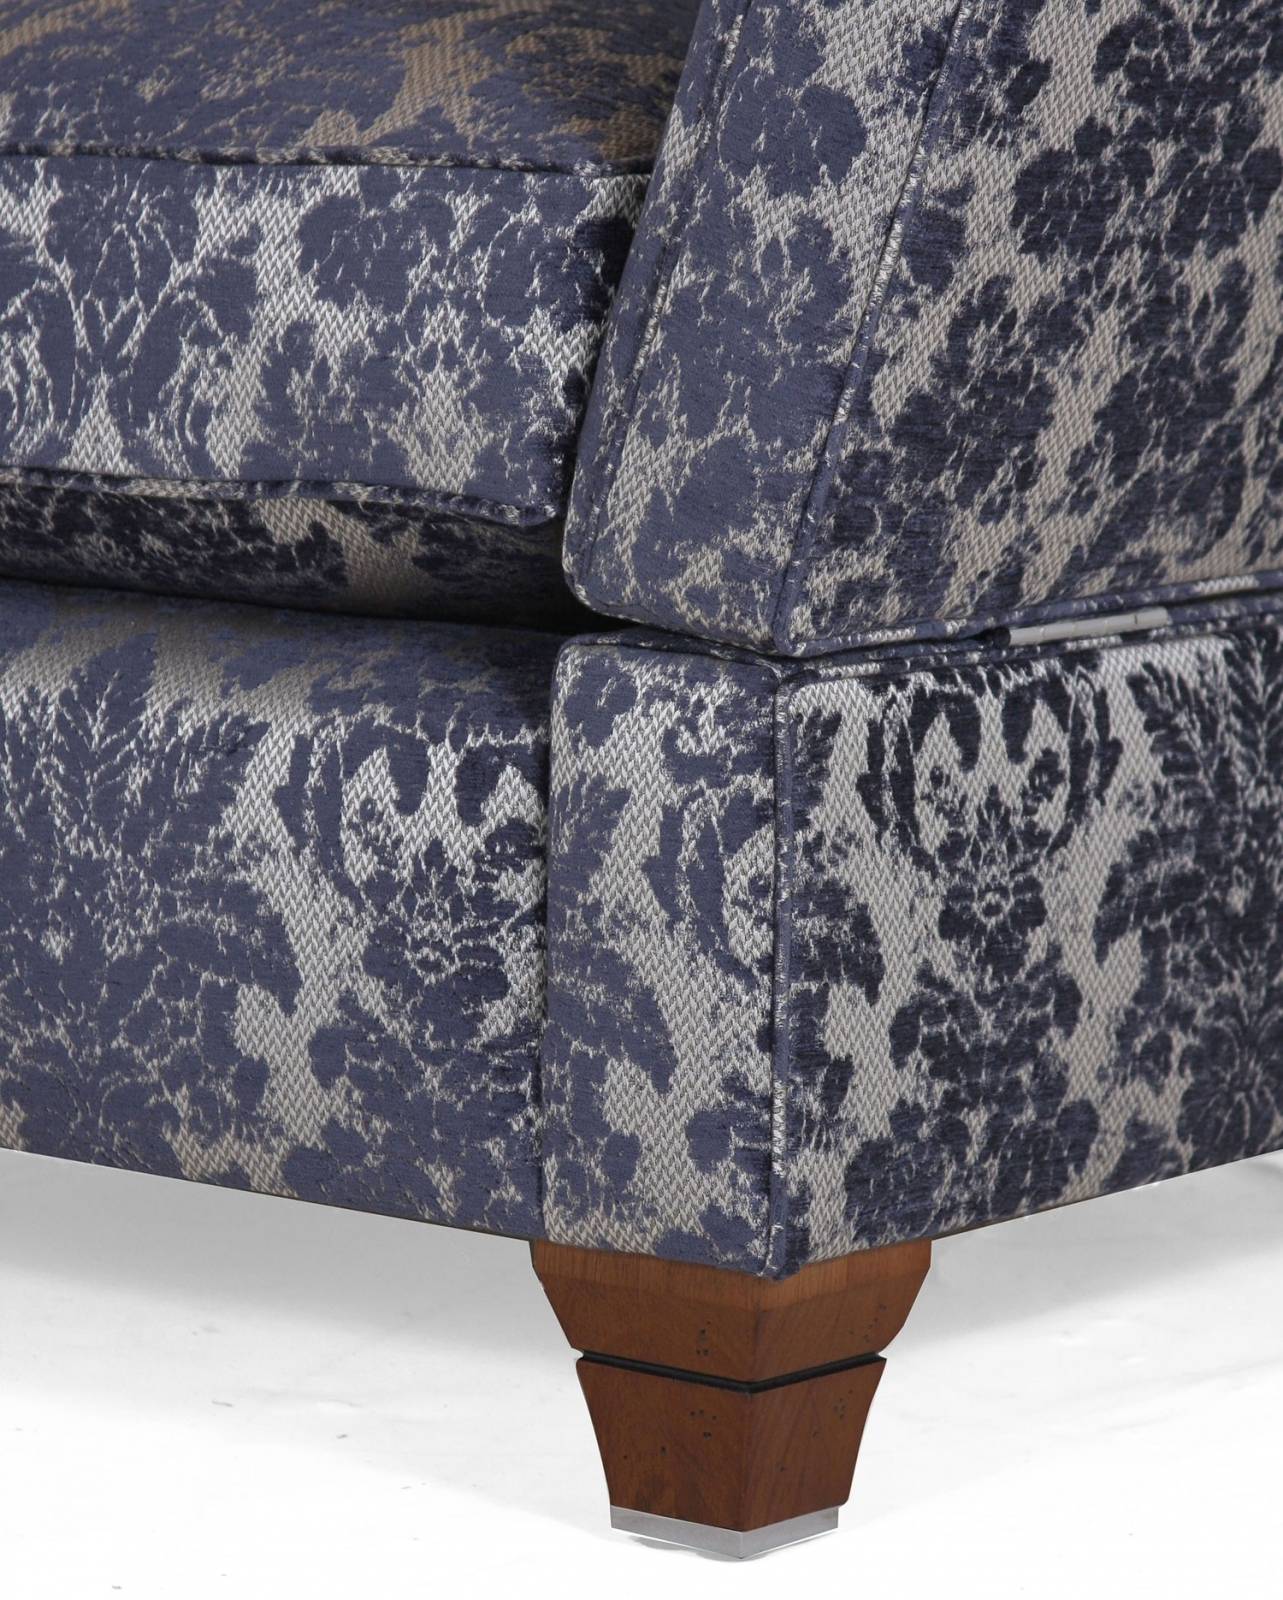 RICHMOND KNOLE 1.5 SEAT SOFA IN IMPERIAL BLUE